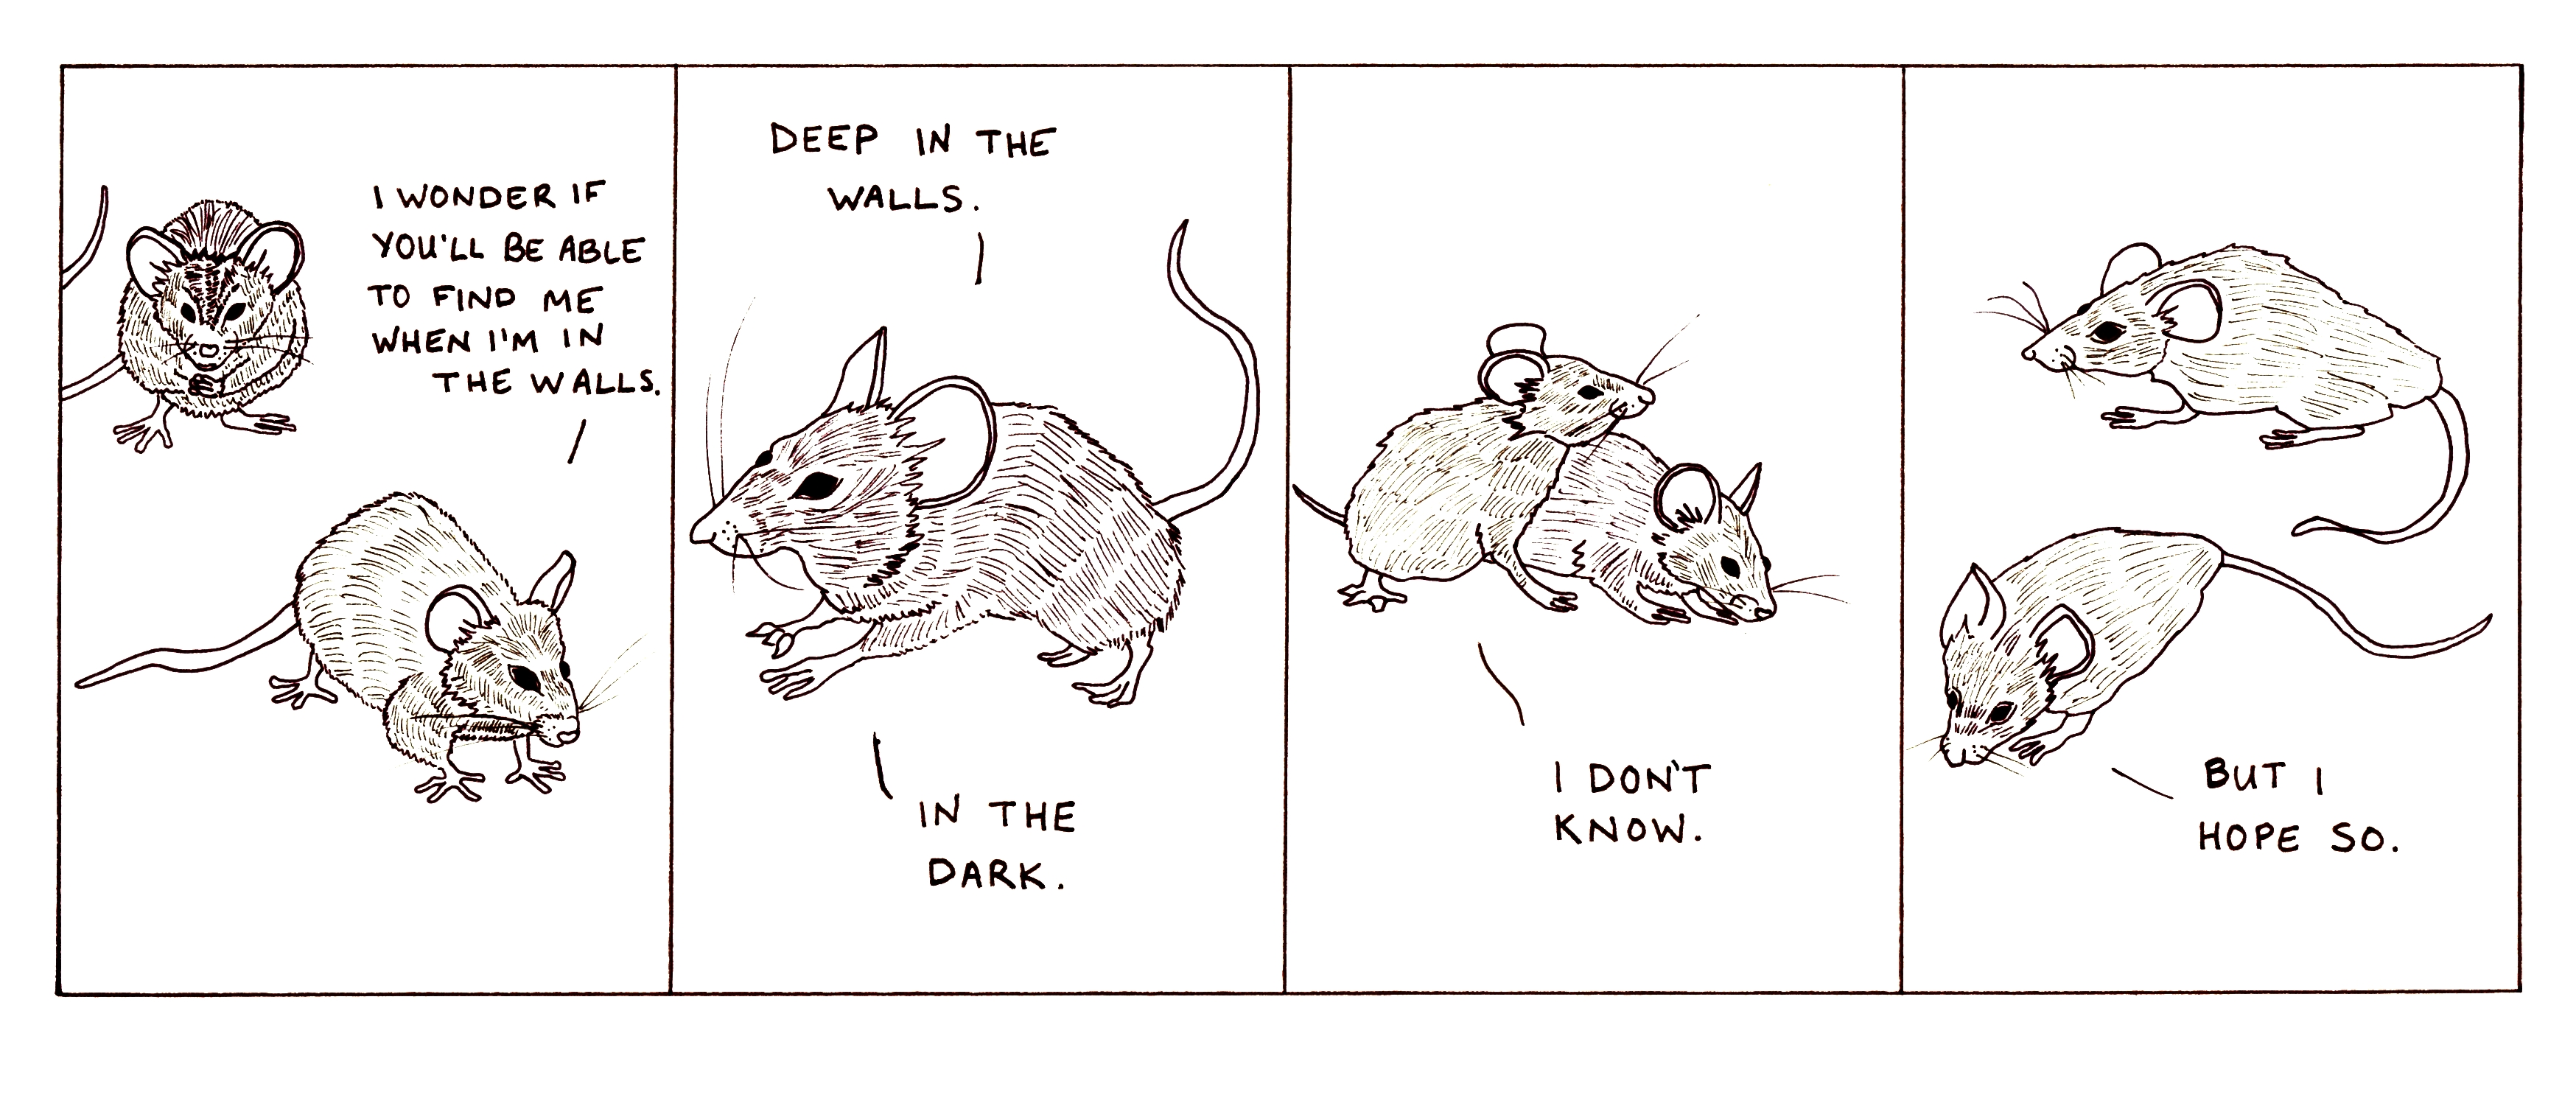 Sad mouse comics